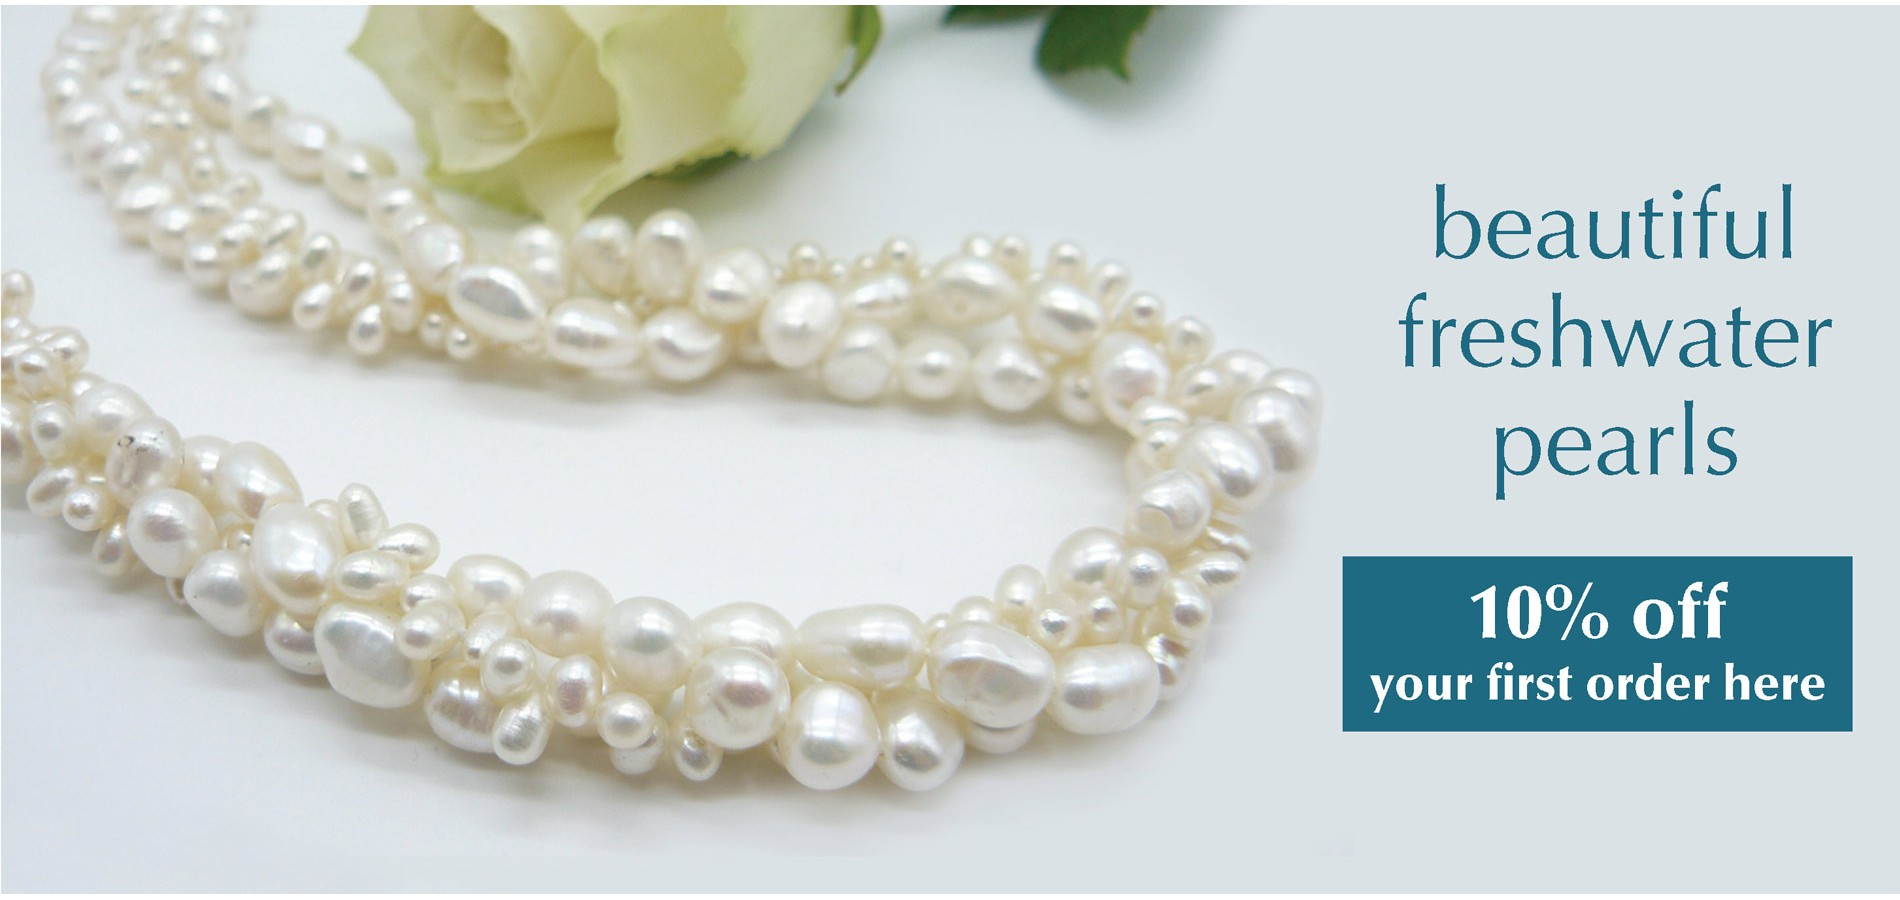 Beautiful freshwater pearls